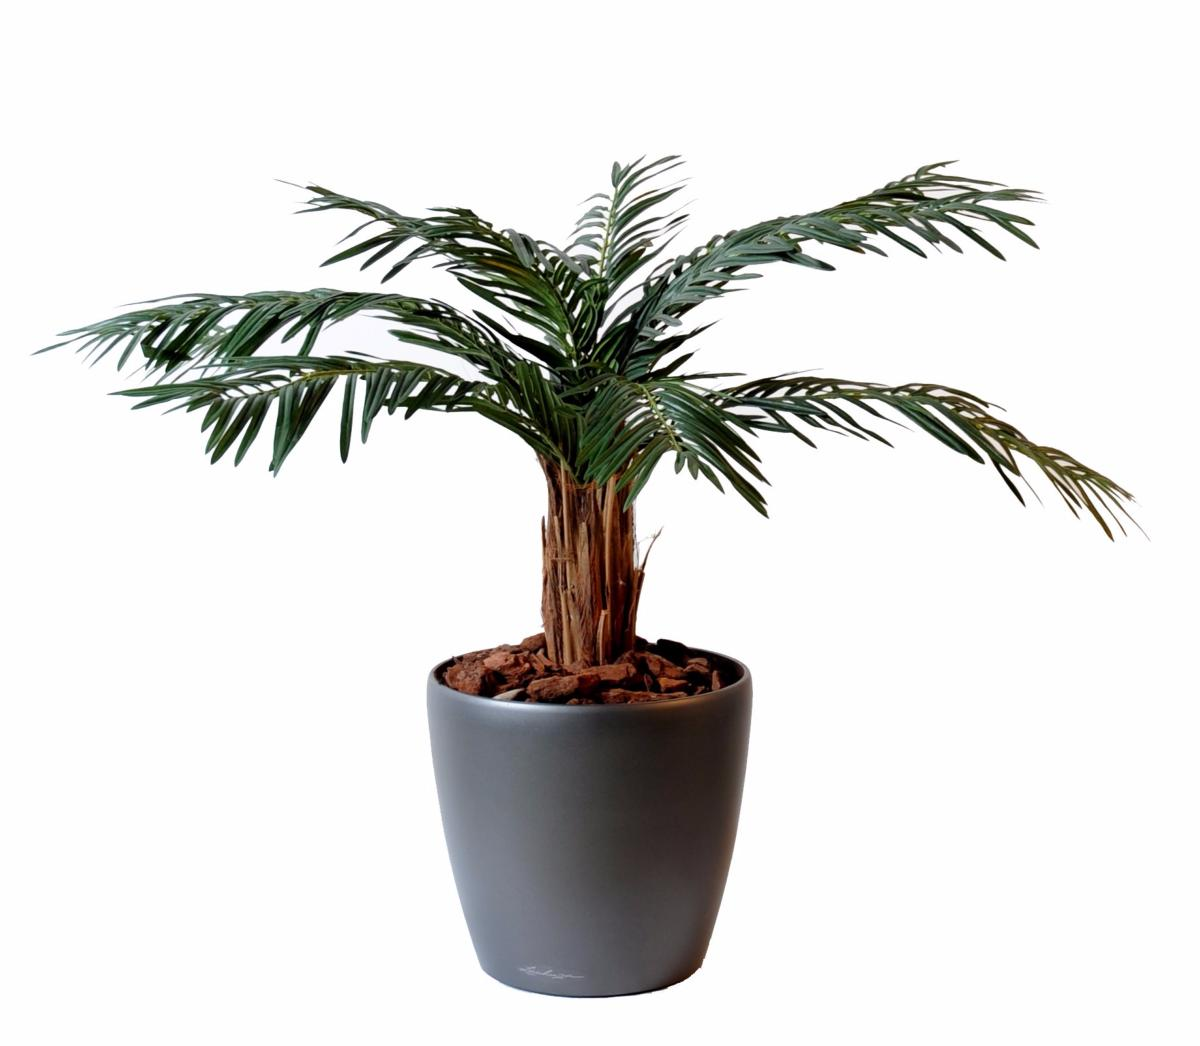 plante verte palmier dypsis lutescens palmier areca with plante verte palmier beautiful. Black Bedroom Furniture Sets. Home Design Ideas